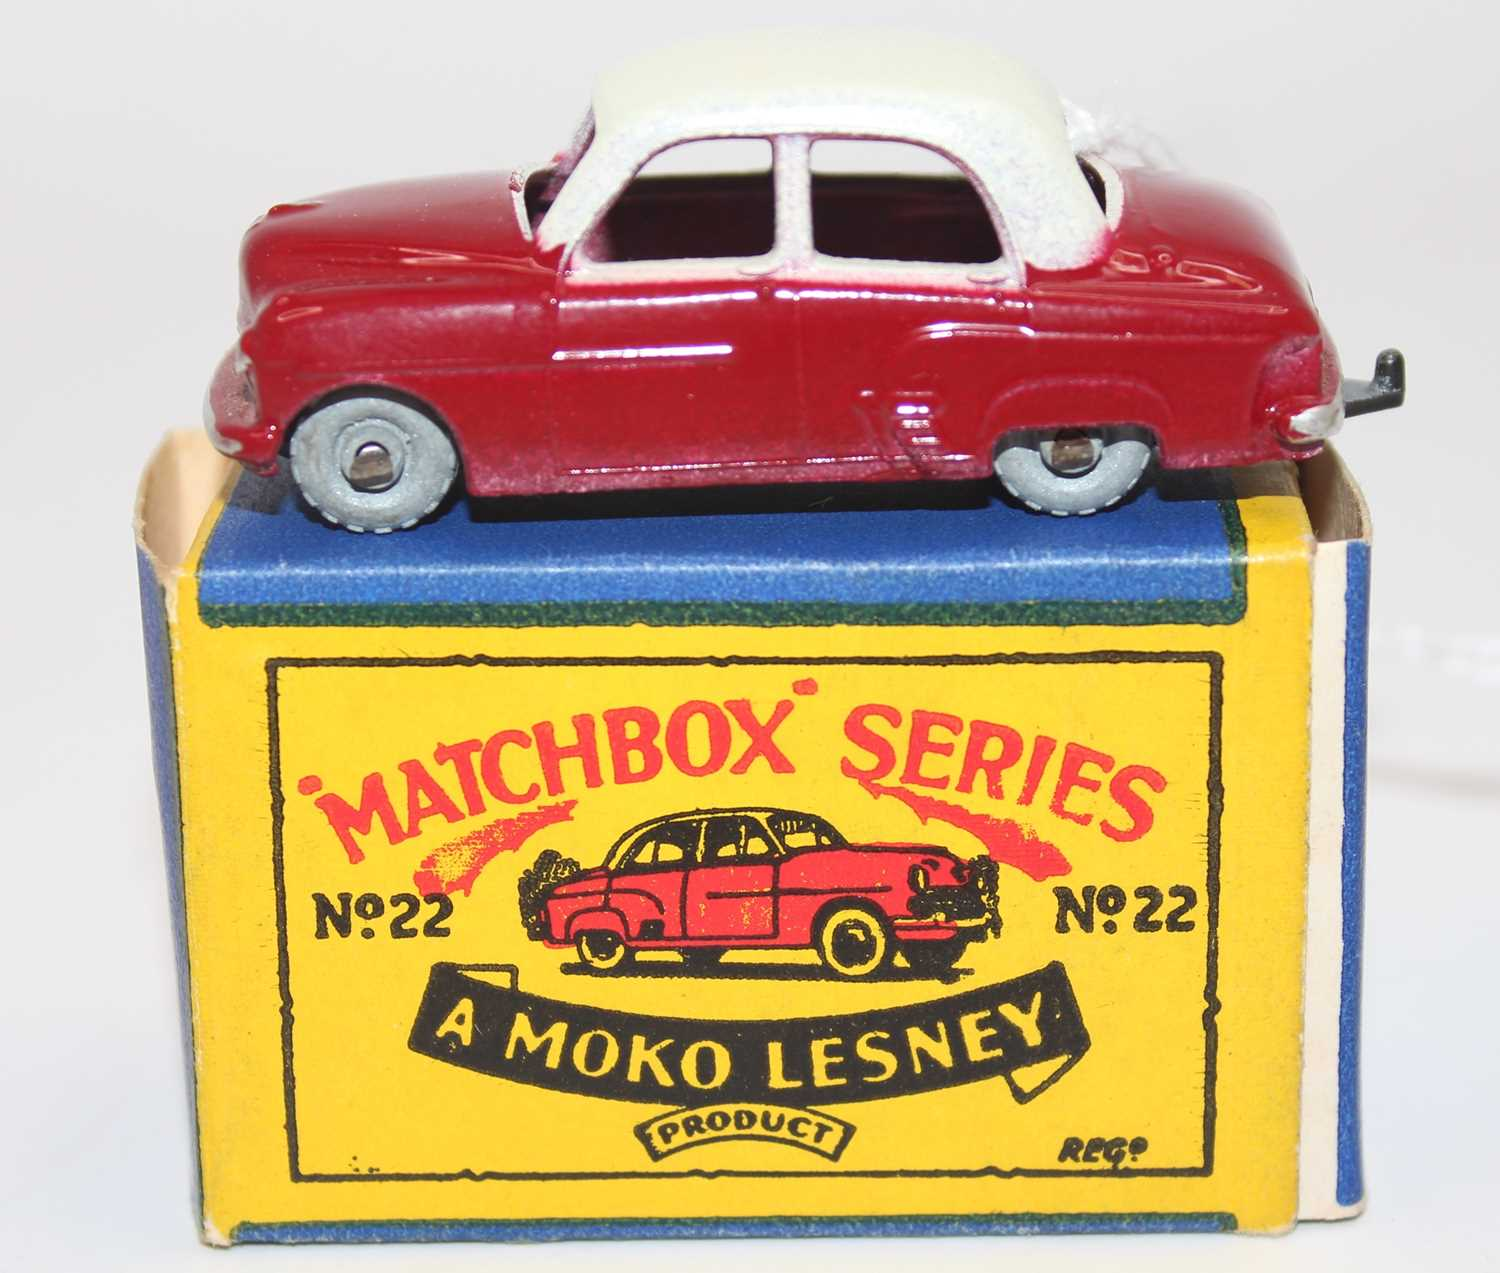 Matchbox series group of 3 models boxed as follows: No.22 Vauxhall Cresta in cream and maroon with - Image 3 of 3